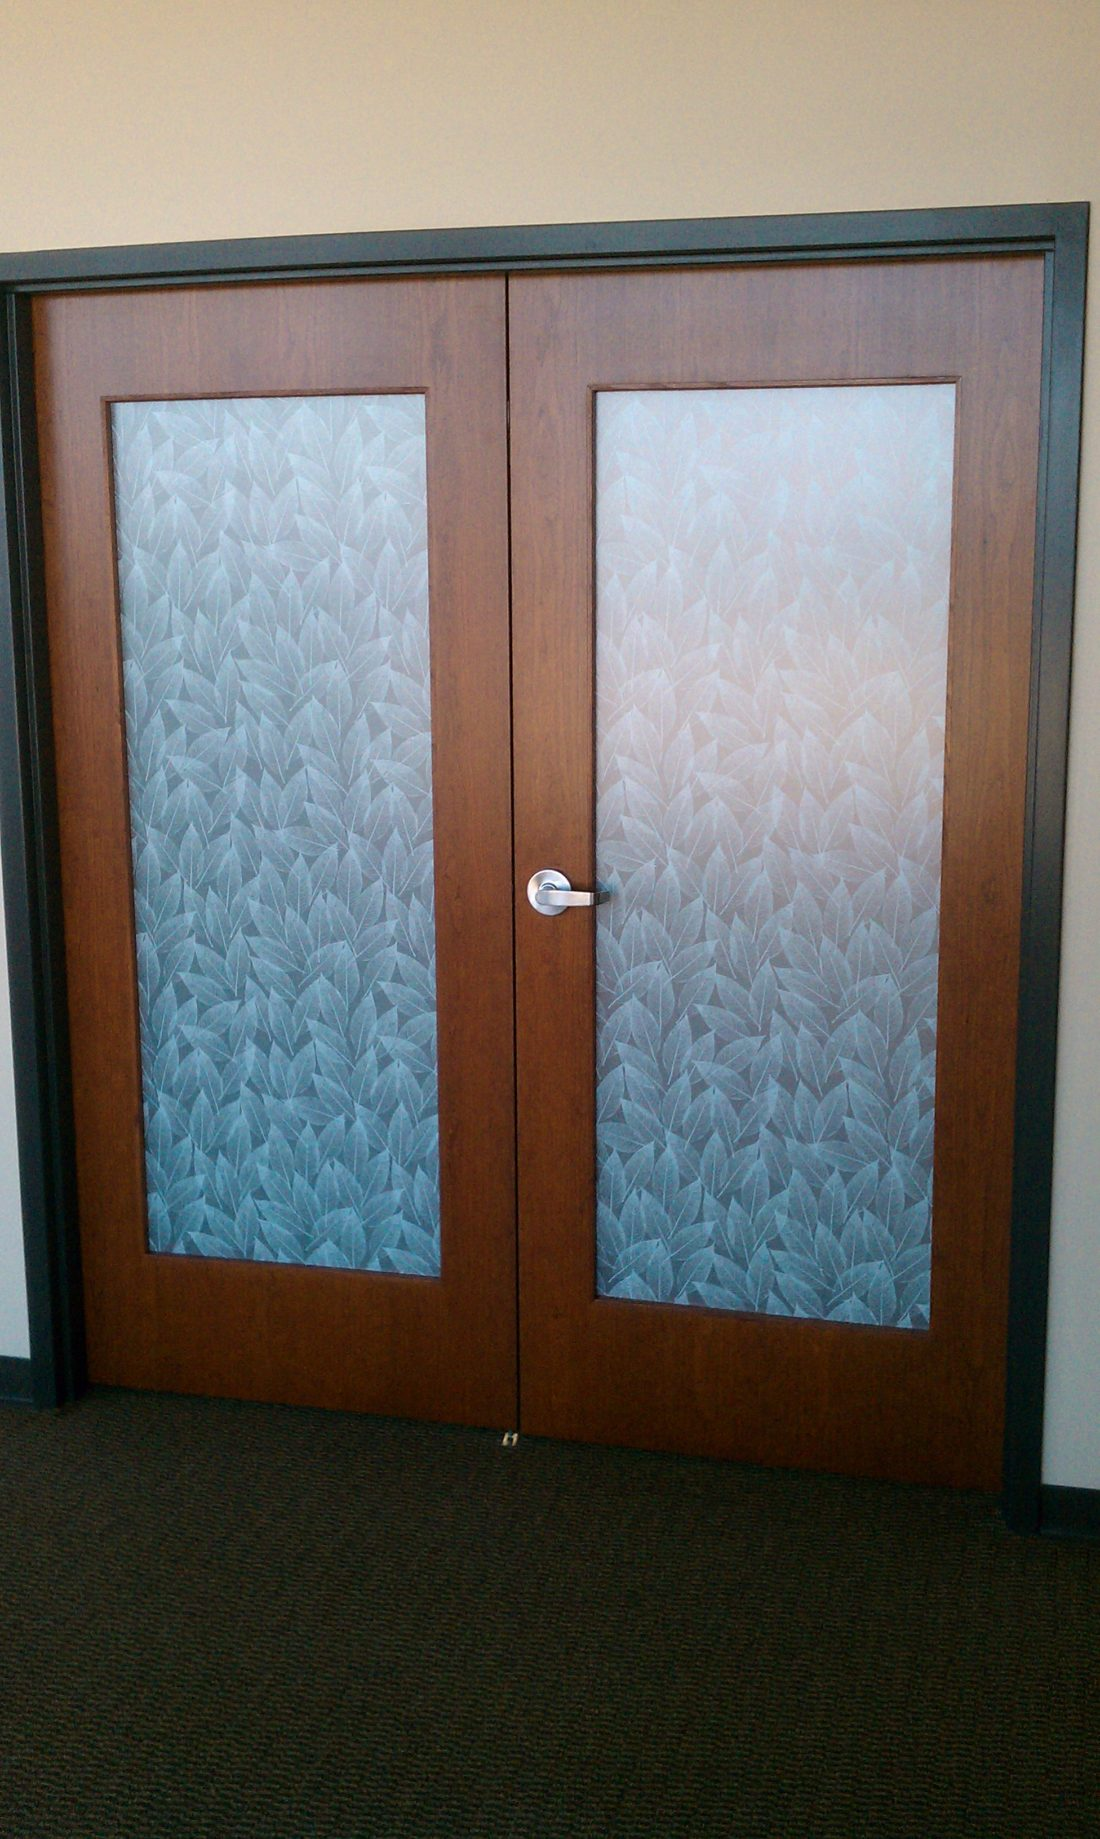 Decorative Window Film Transforms Plain Office Doors